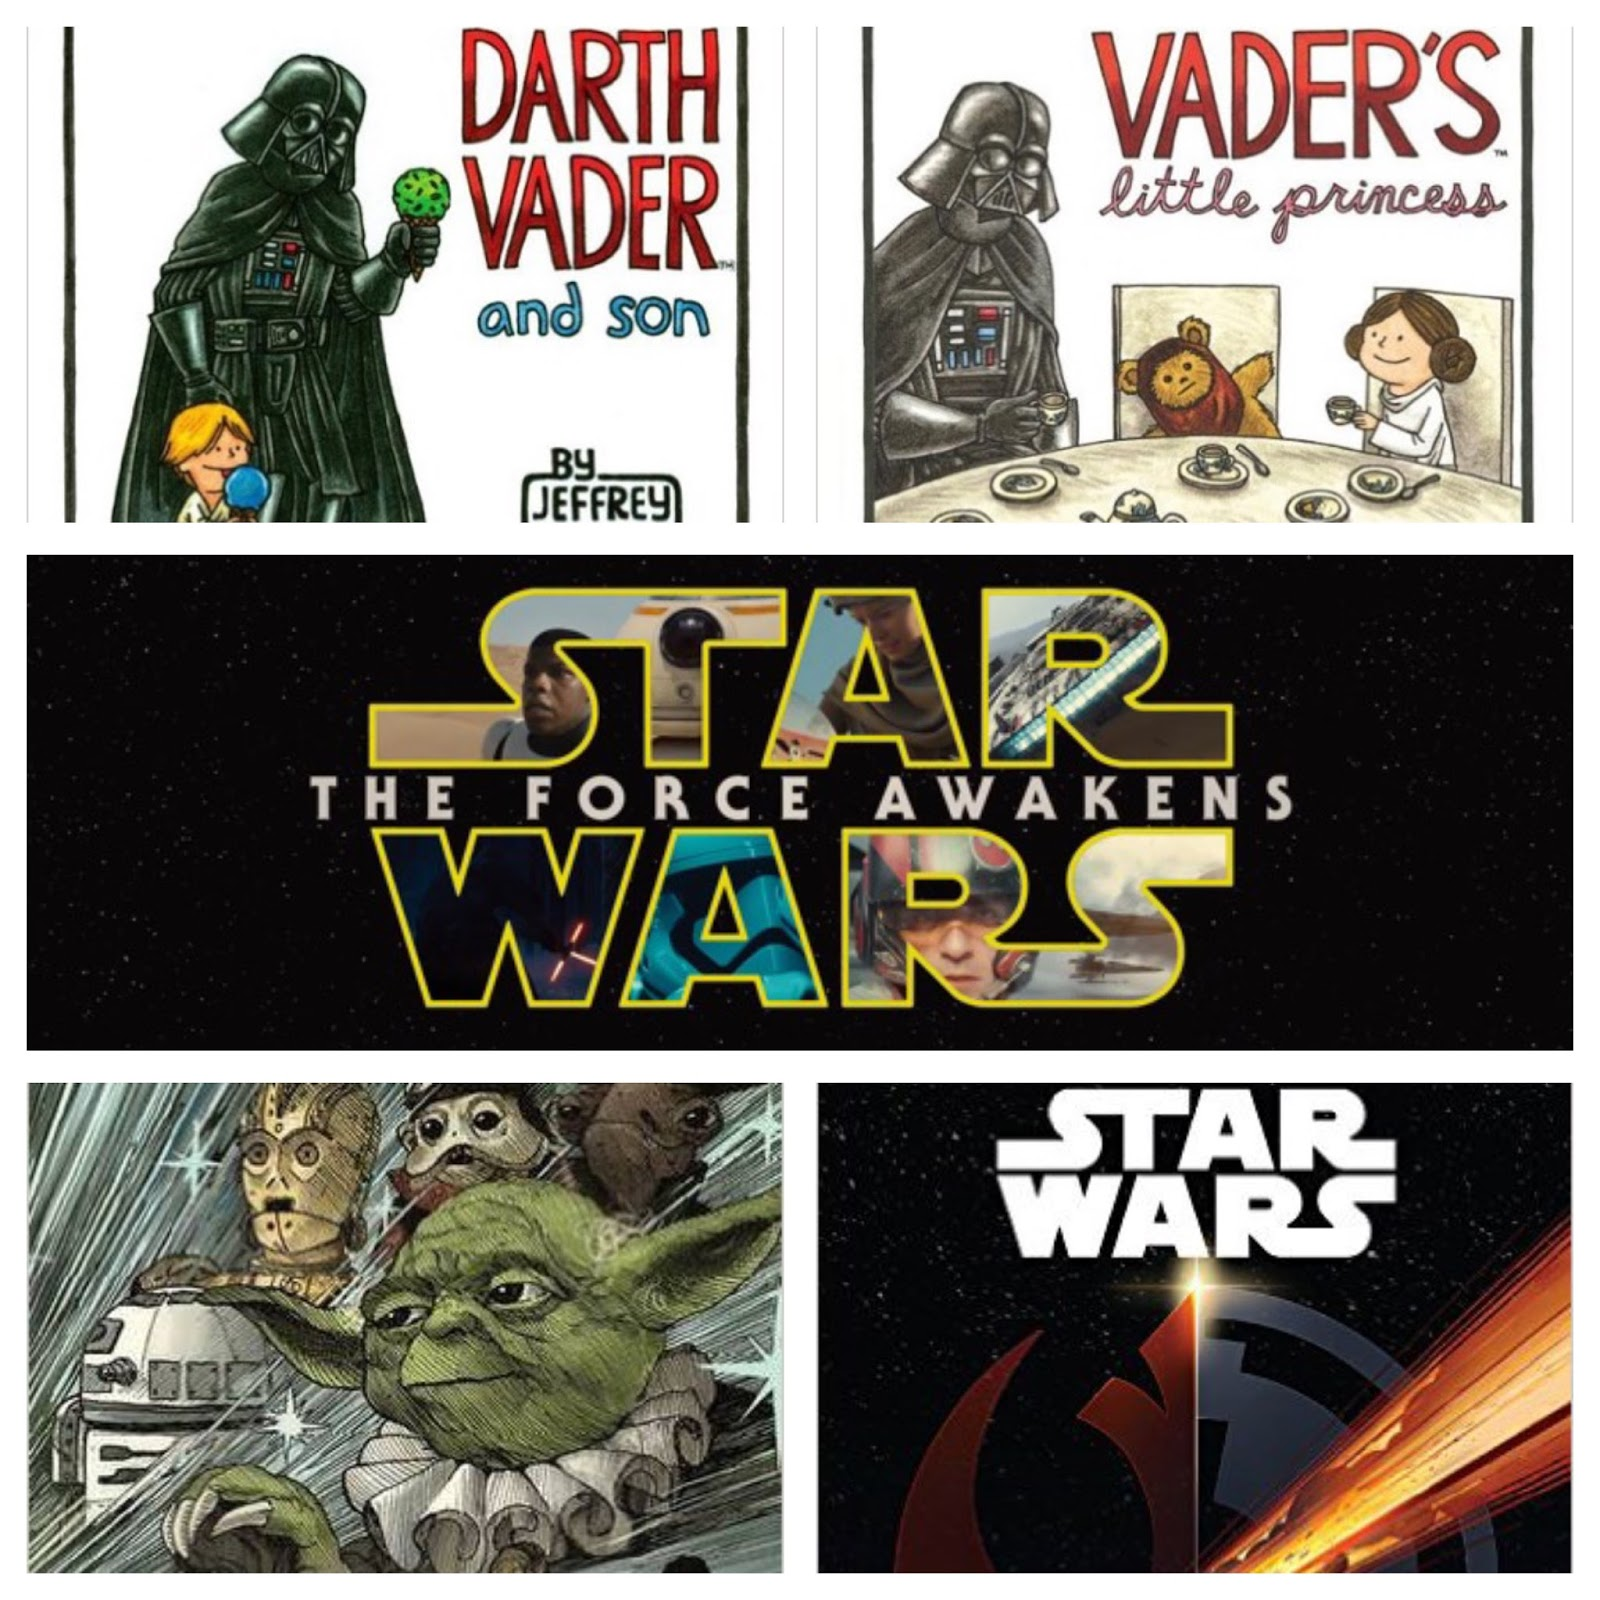 Delicious reads star wars inspired books for future jedis star wars inspired books for future jedis jeuxipadfo Images